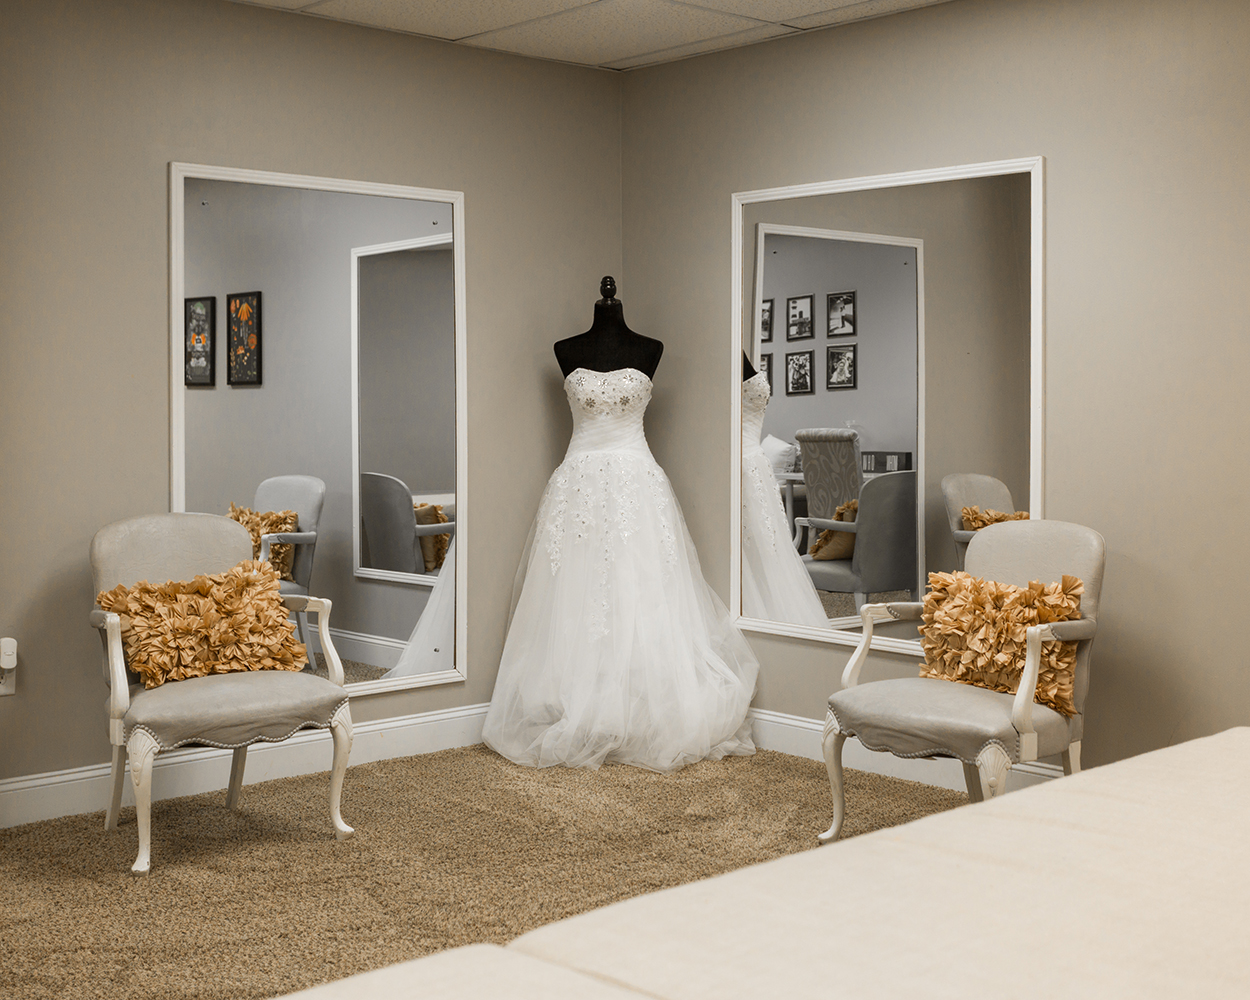 Lighthouse Knoxville - Bridal suite.